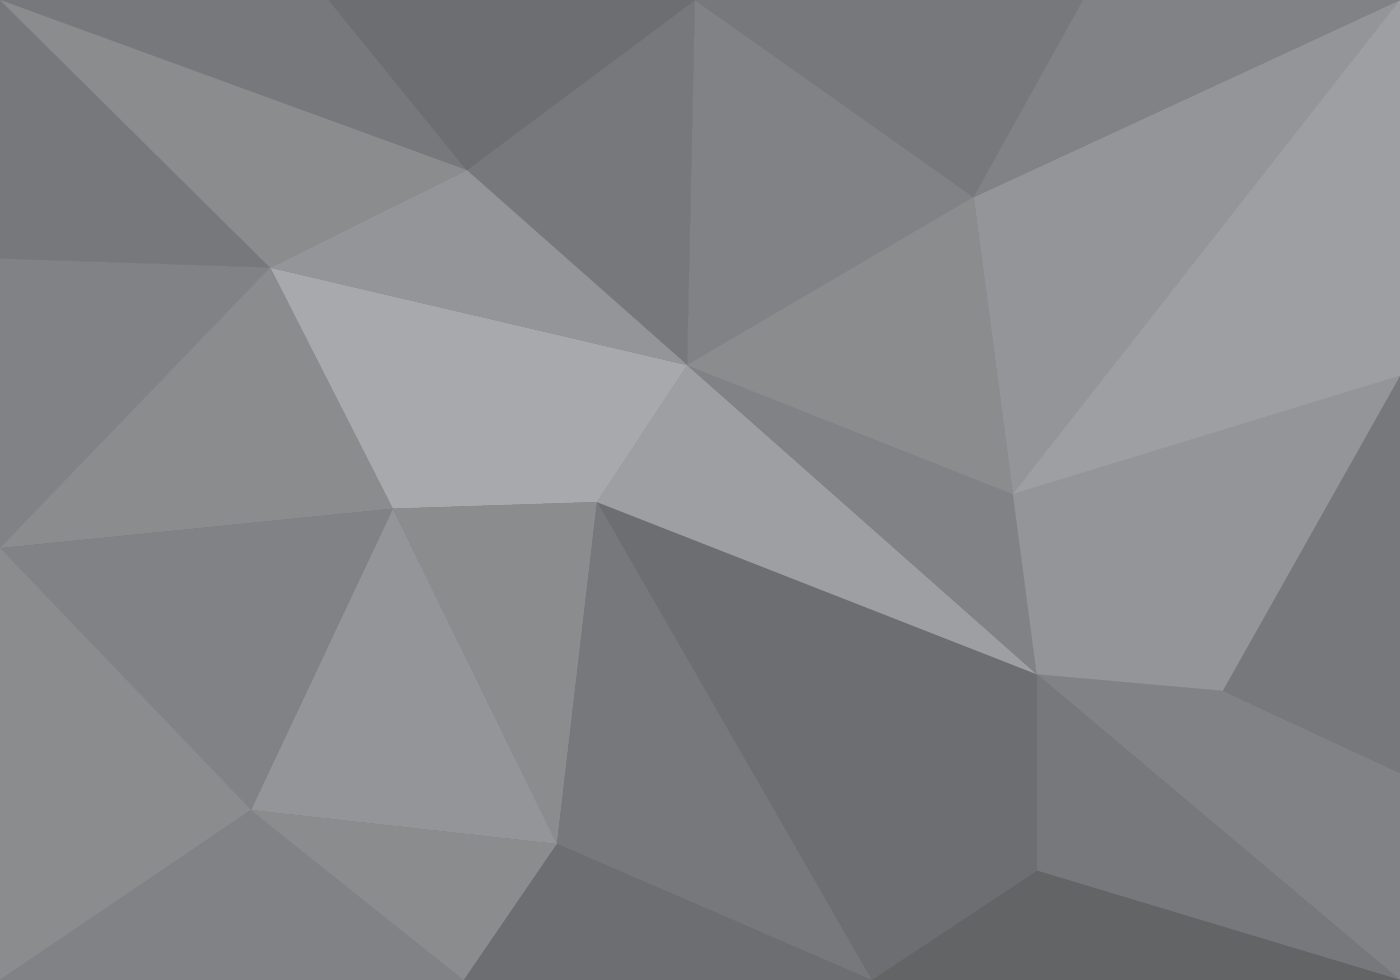 3d Silver Grey Wallpaper Lowpoly Grey Gradient Download Free Vector Art Stock